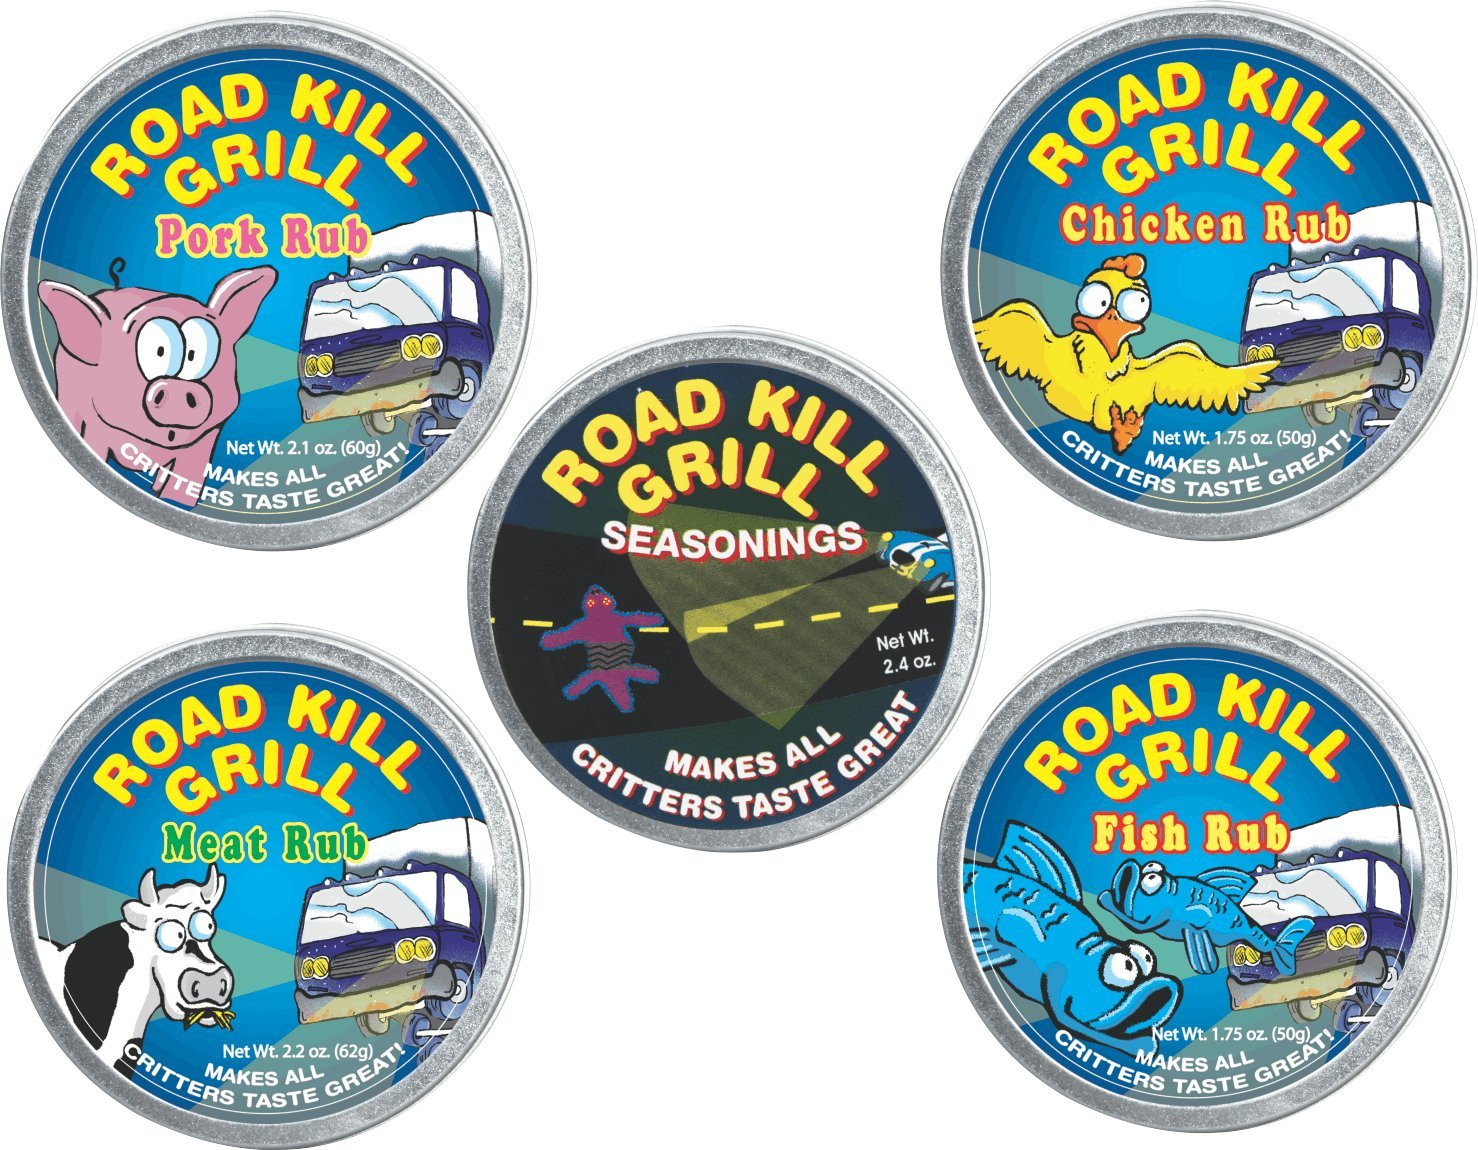 5 piece Dean Jacob's Road Kill Grill Tin Collection